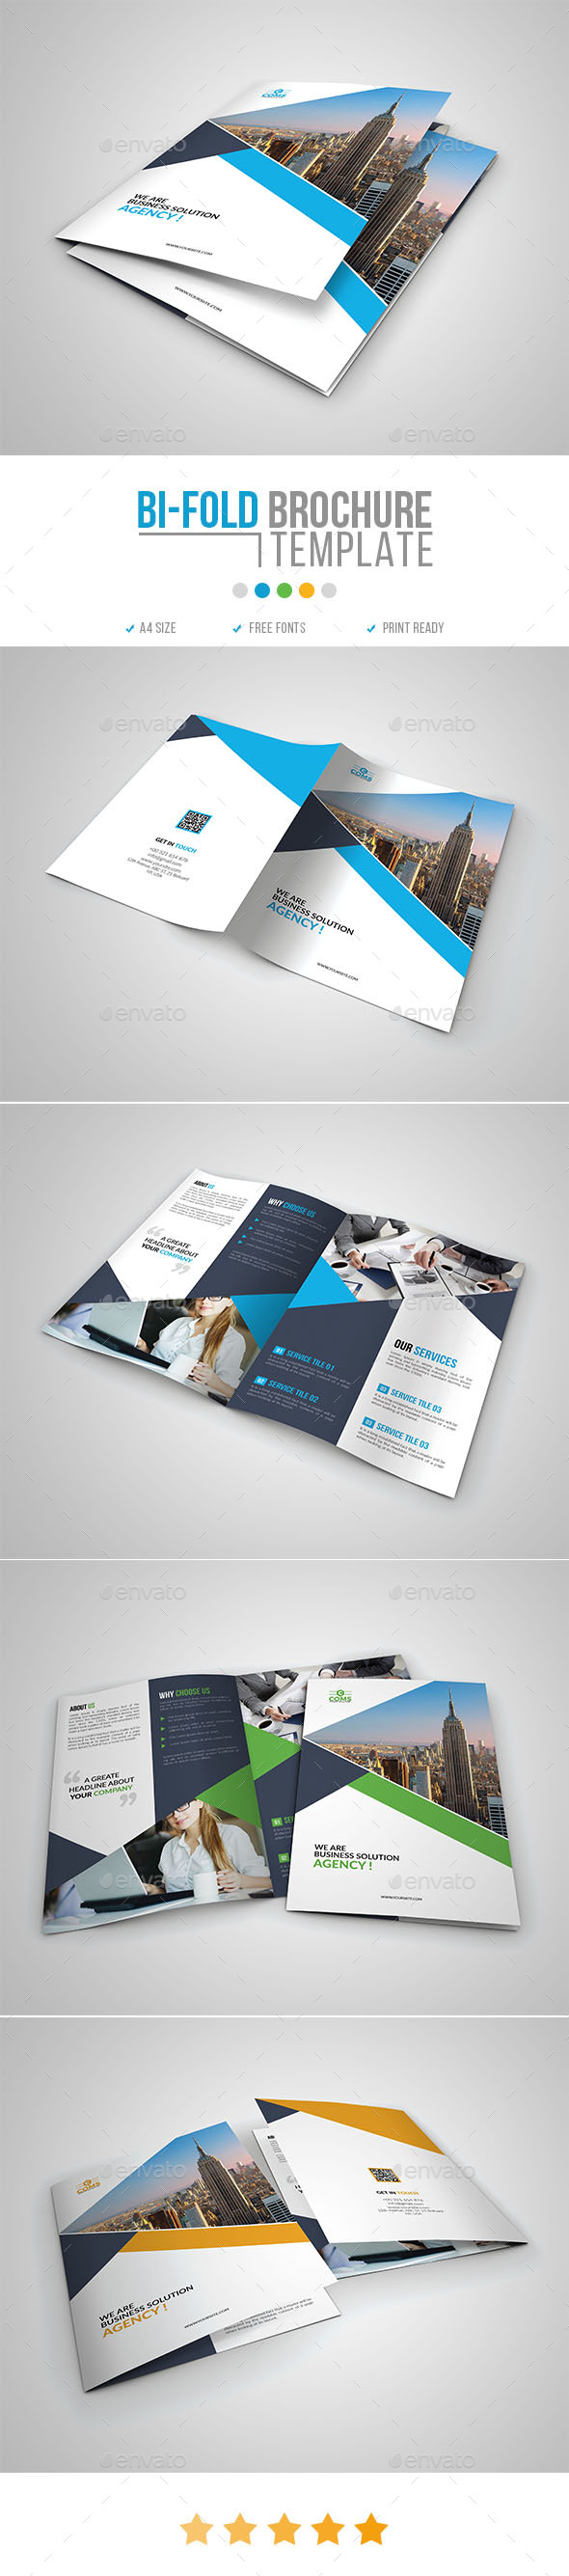 GraphicRiver Corporate Bi Fold Brochure Template 09 20948466